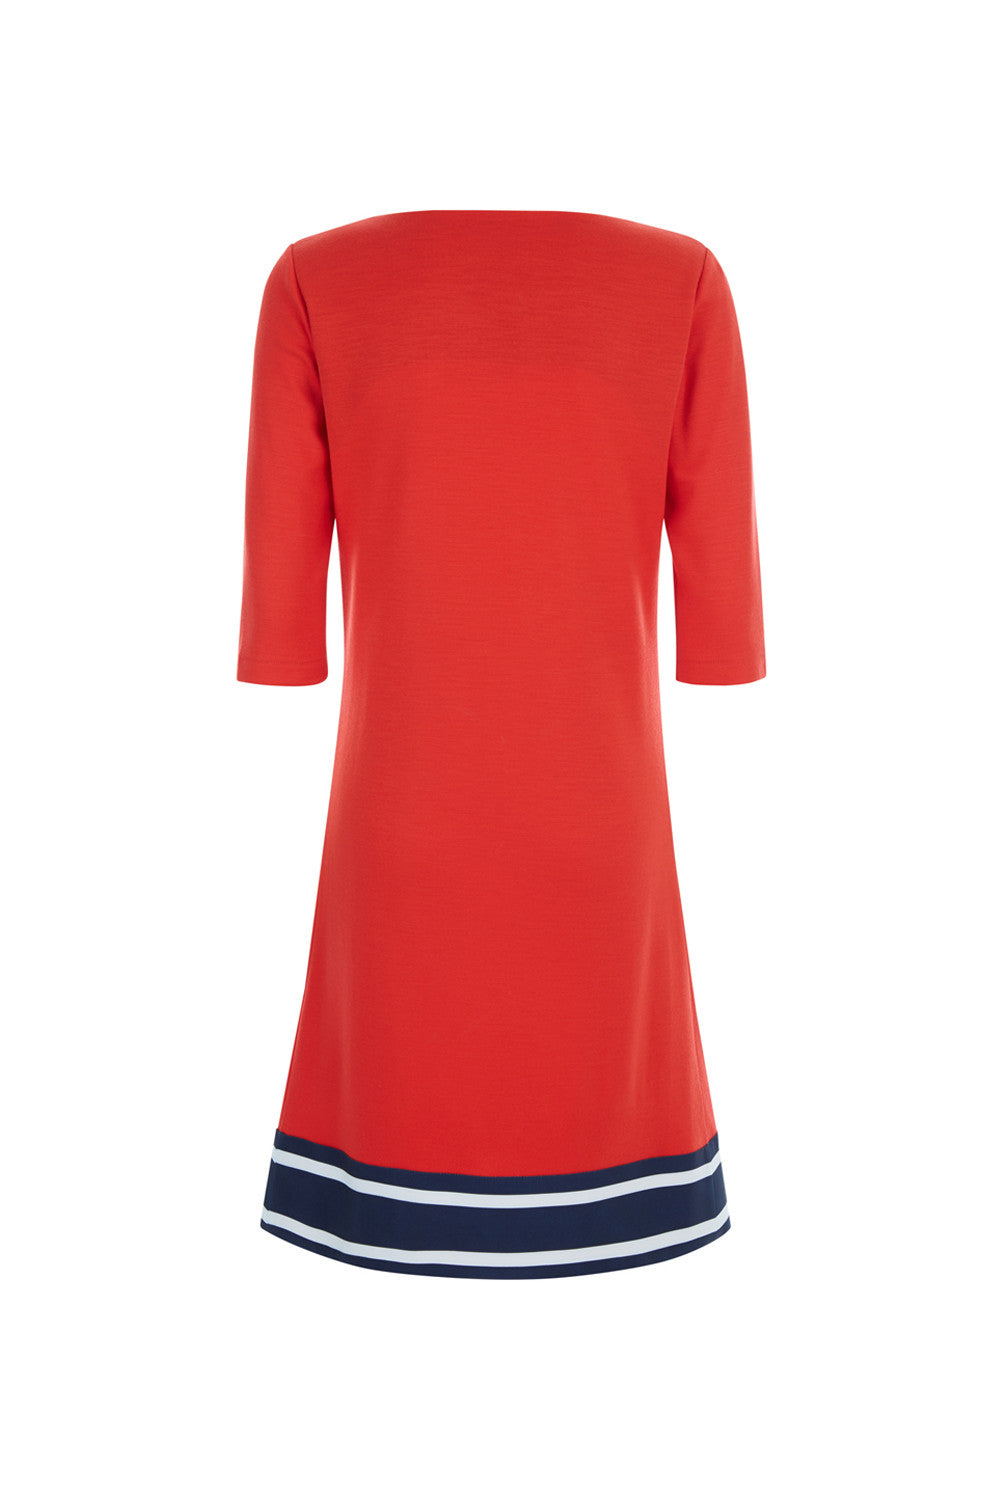 Naomi Dress - Maternity - Madderson London